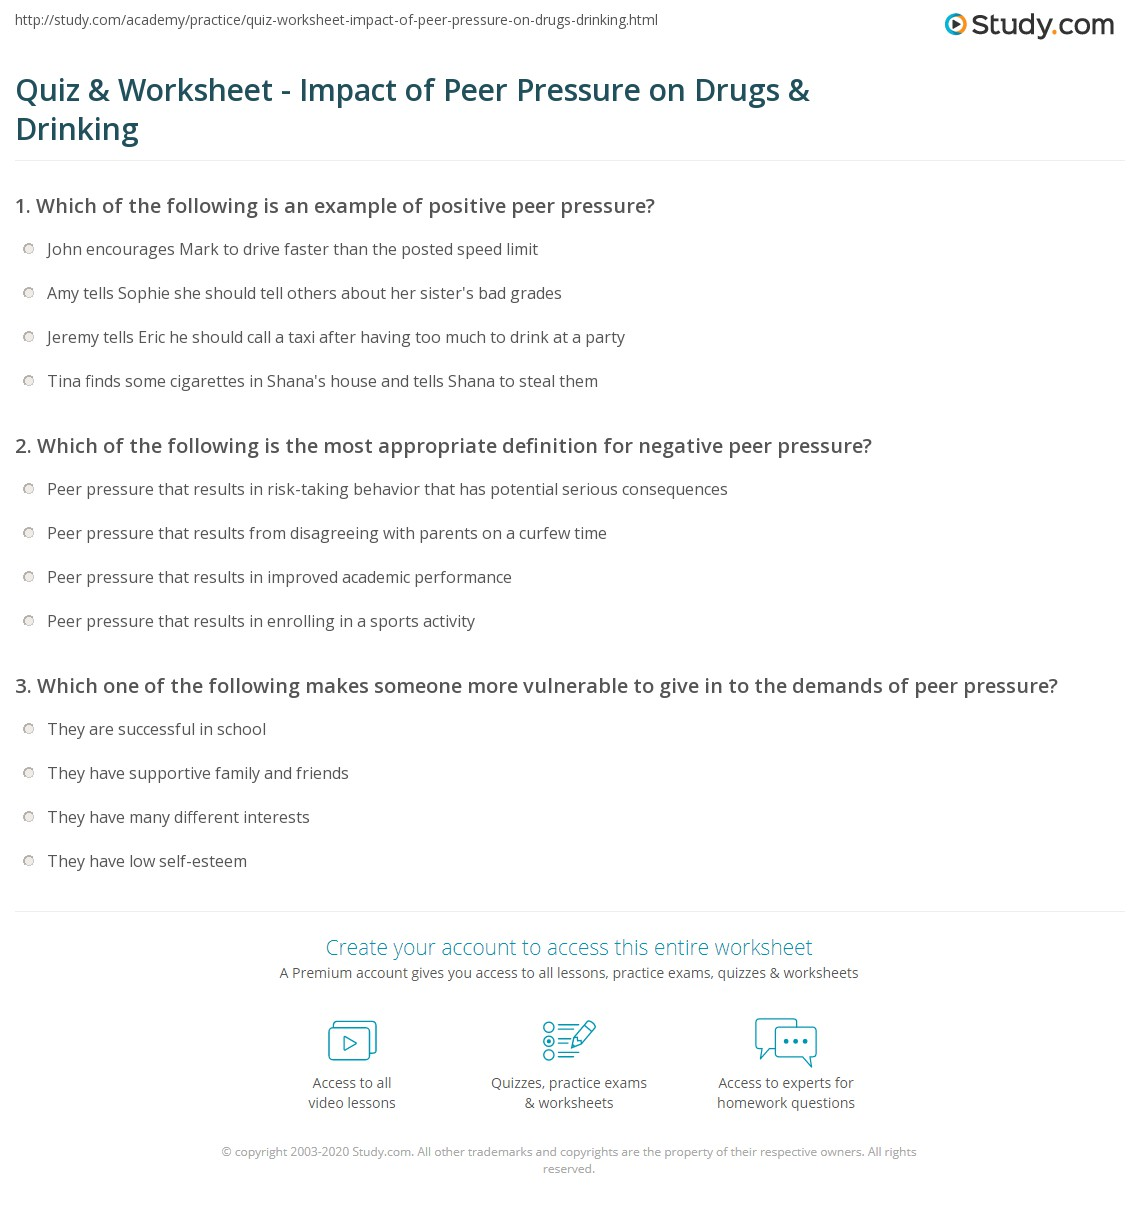 quiz & worksheet - impact of peer pressure on drugs & drinking